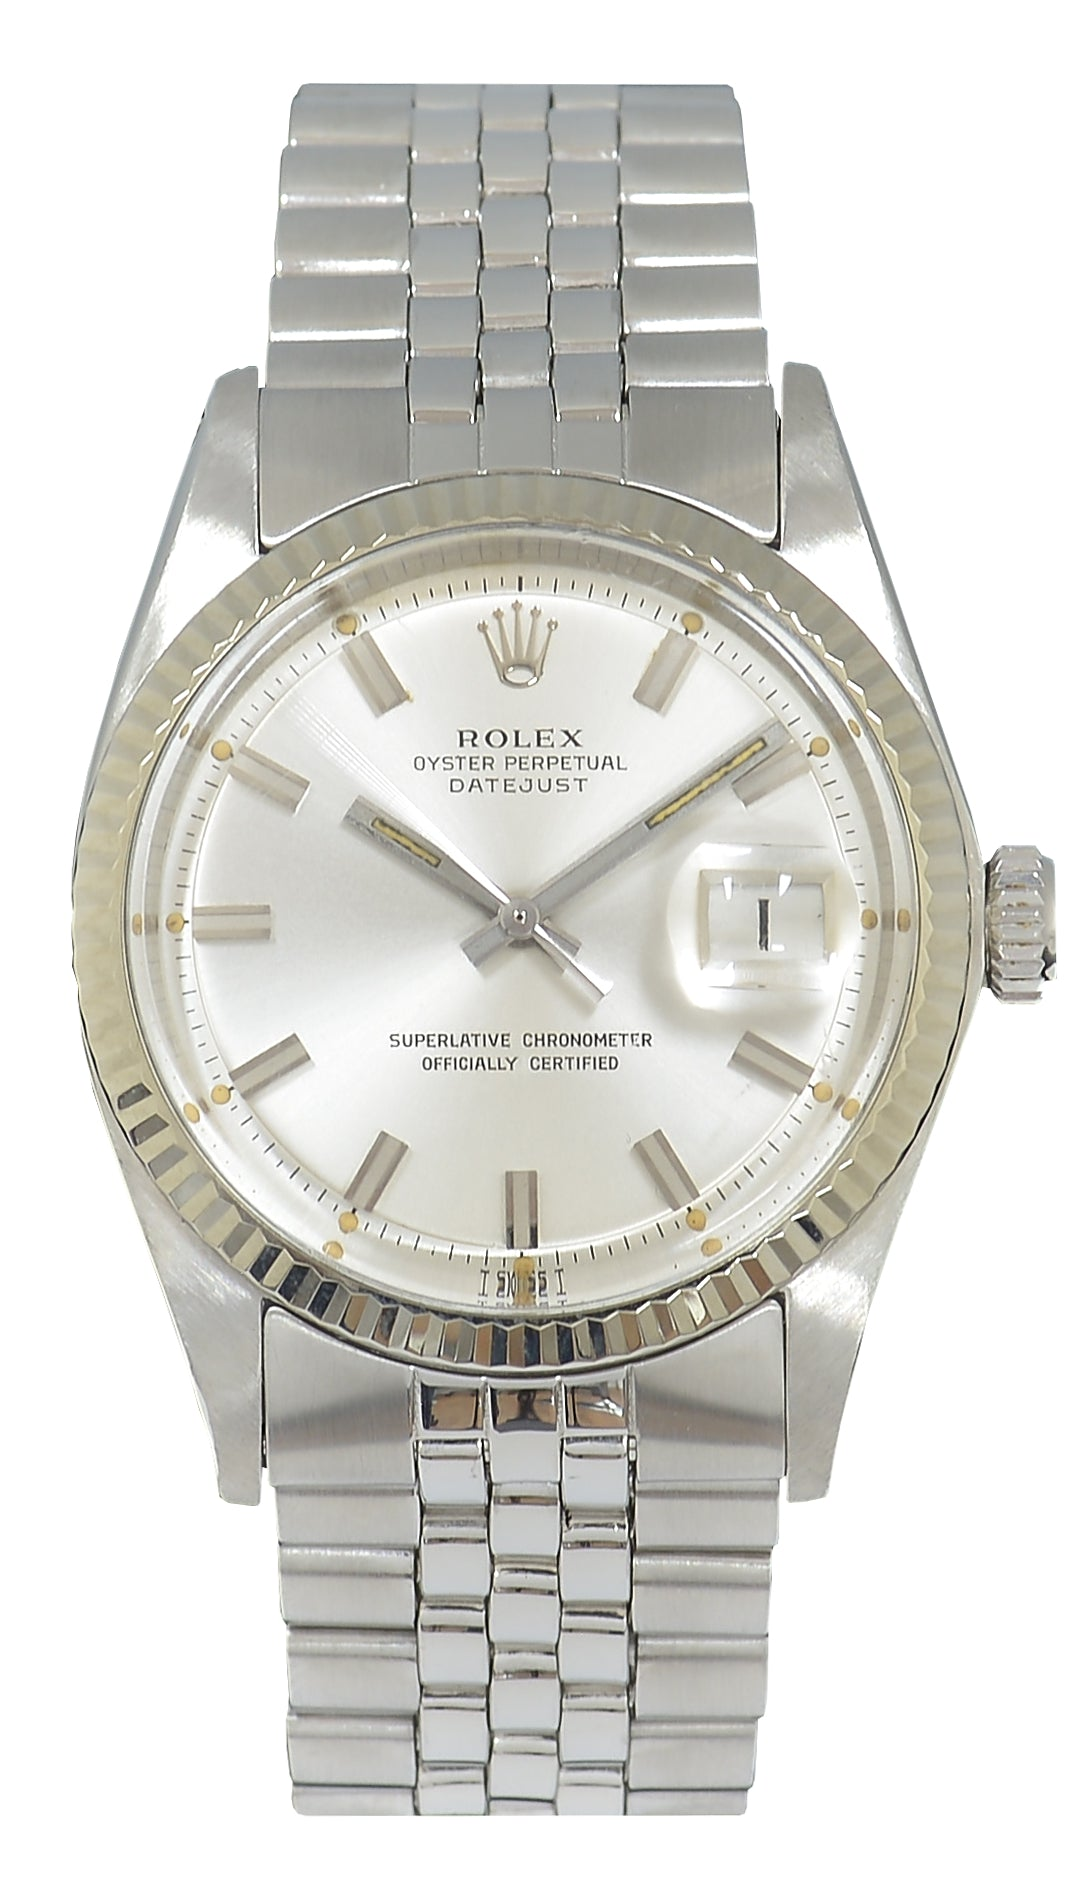 Rolex Datejust Steel Watch with Silver Dial, Ref: 1601 (1973)